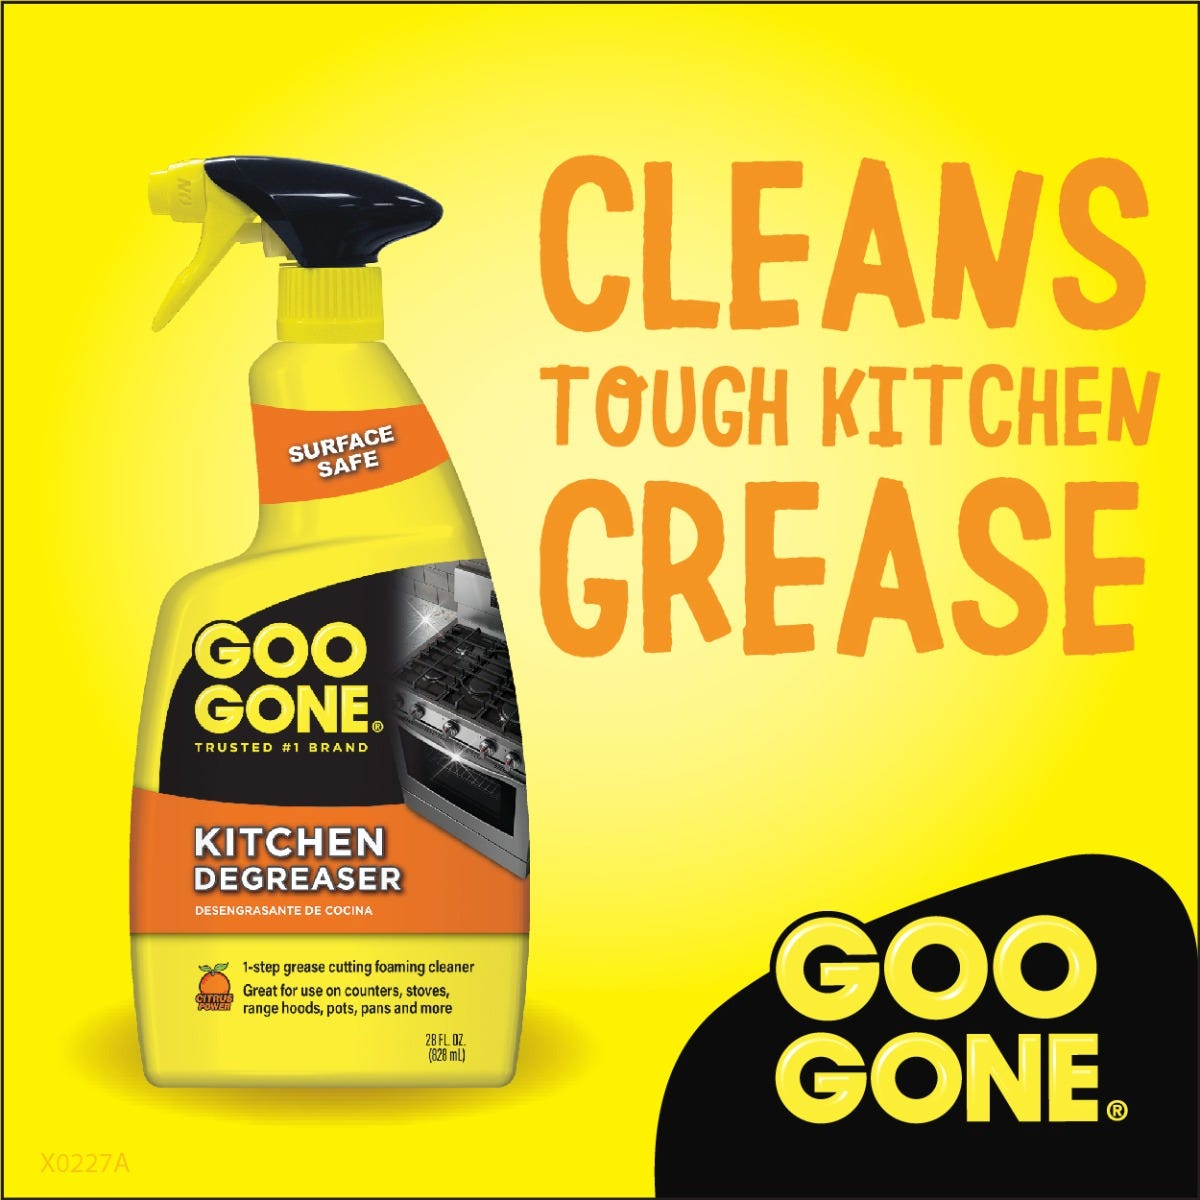 Cleans tough kitchen grease